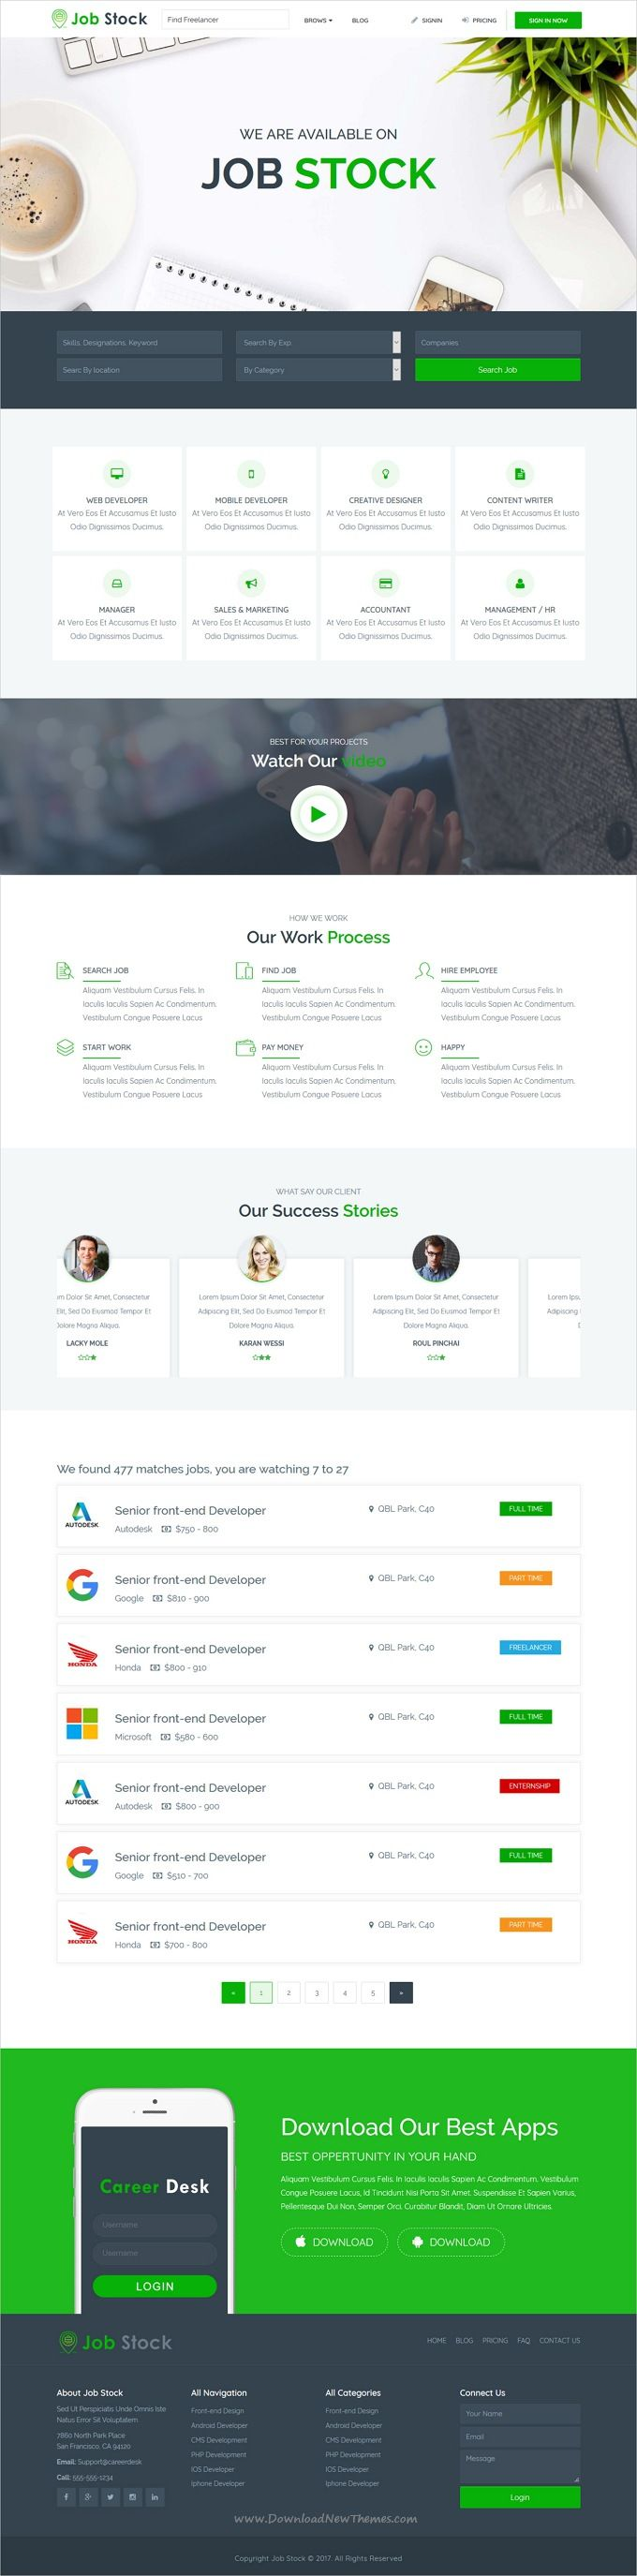 Job Stock is clean and modern design 4in1 responsive #HTML5 template for creative #jobboard or #job portal website download now..